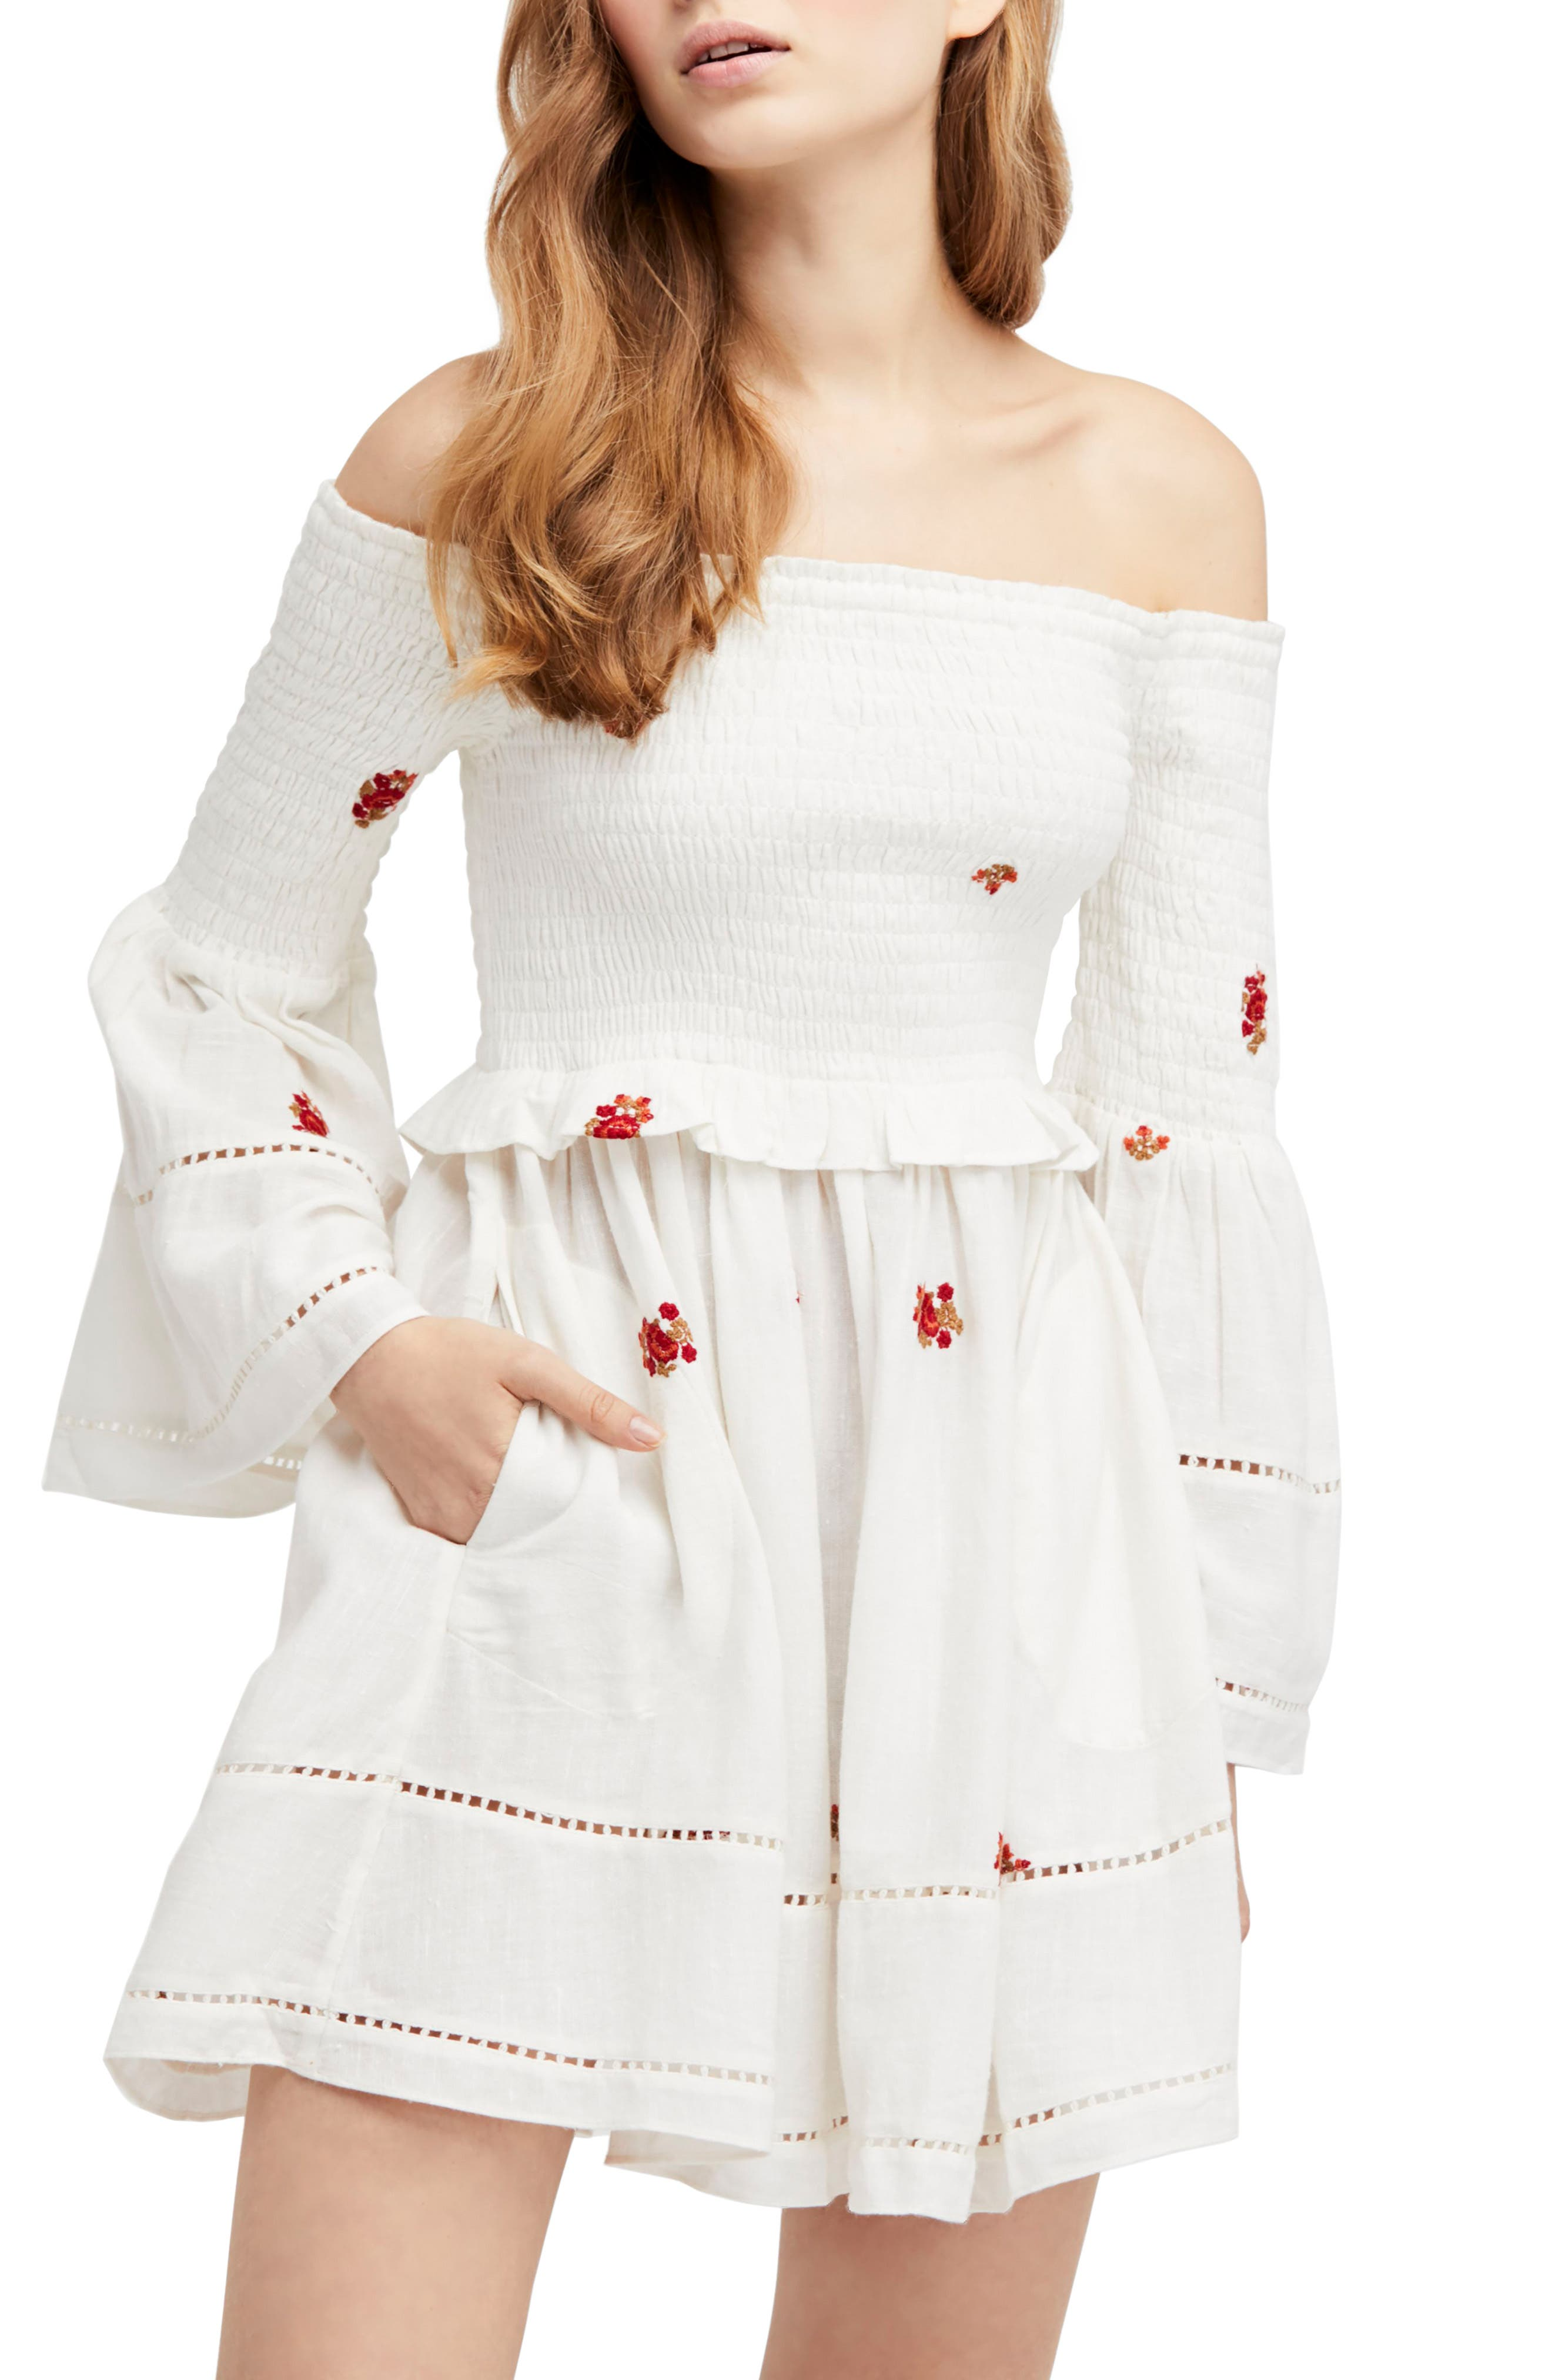 Main Image - Free People Counting Daisies Embroidered Off the Shoulder Dress